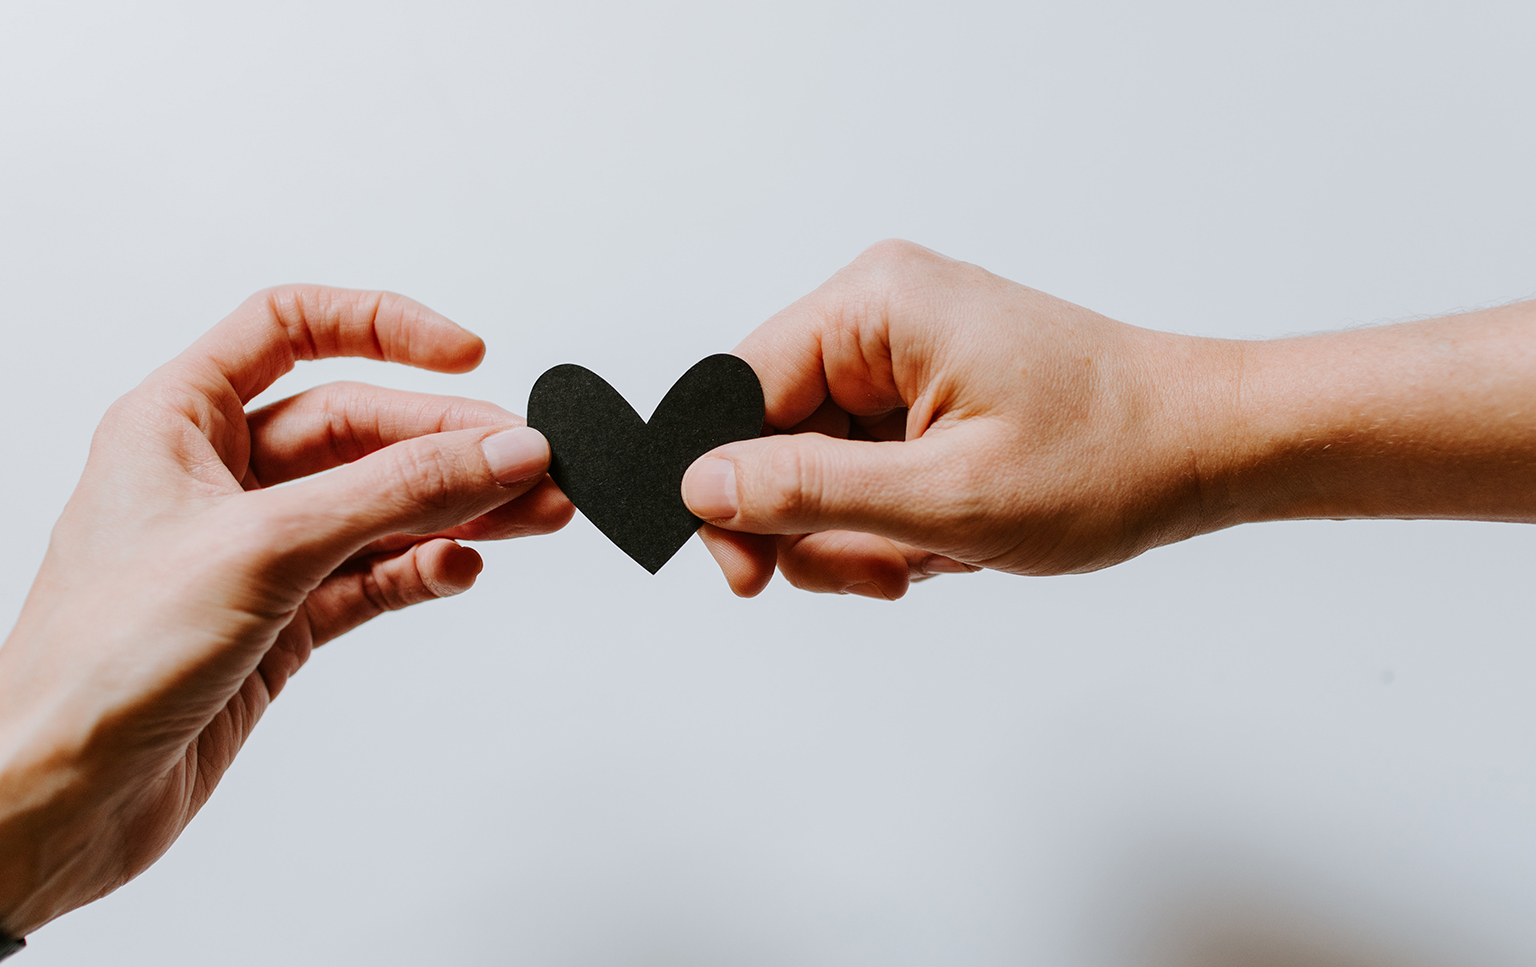 Two hands holding a black paper heart